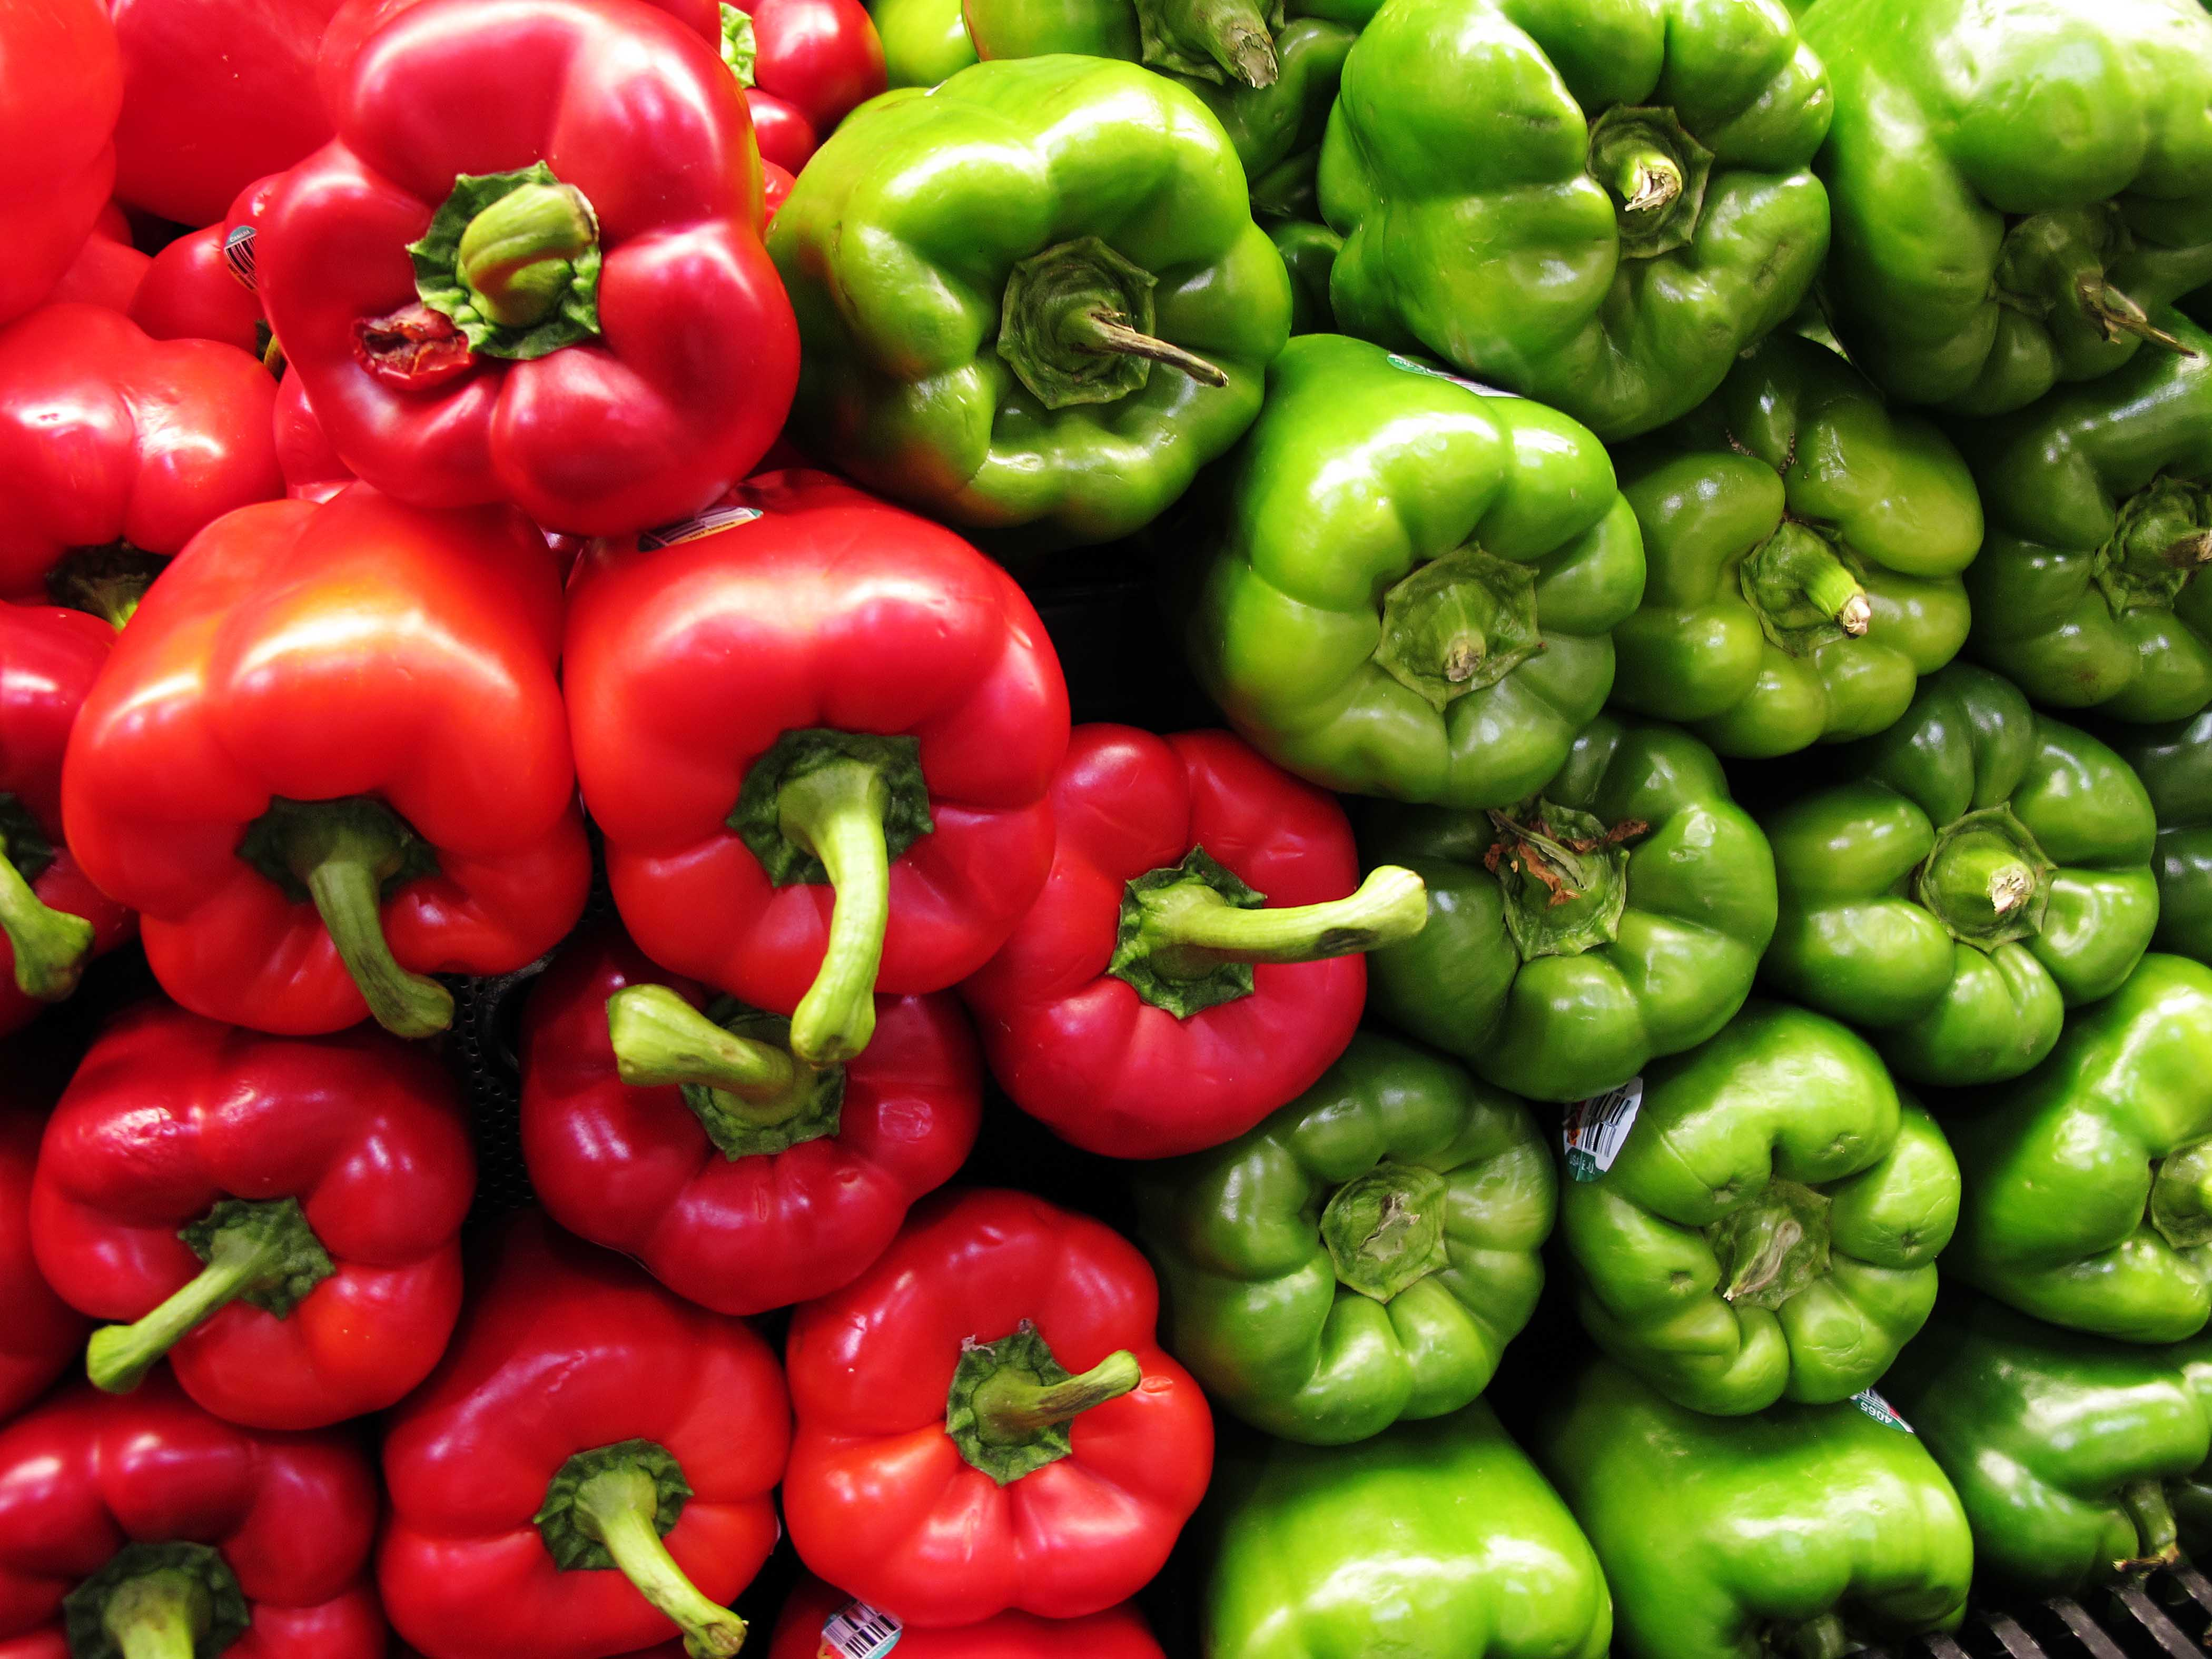 Beautiful Wallpaper High Resolution Food - Green-and-Red-Wallpaper-21-4200x3150  Pictures_3610070.jpg